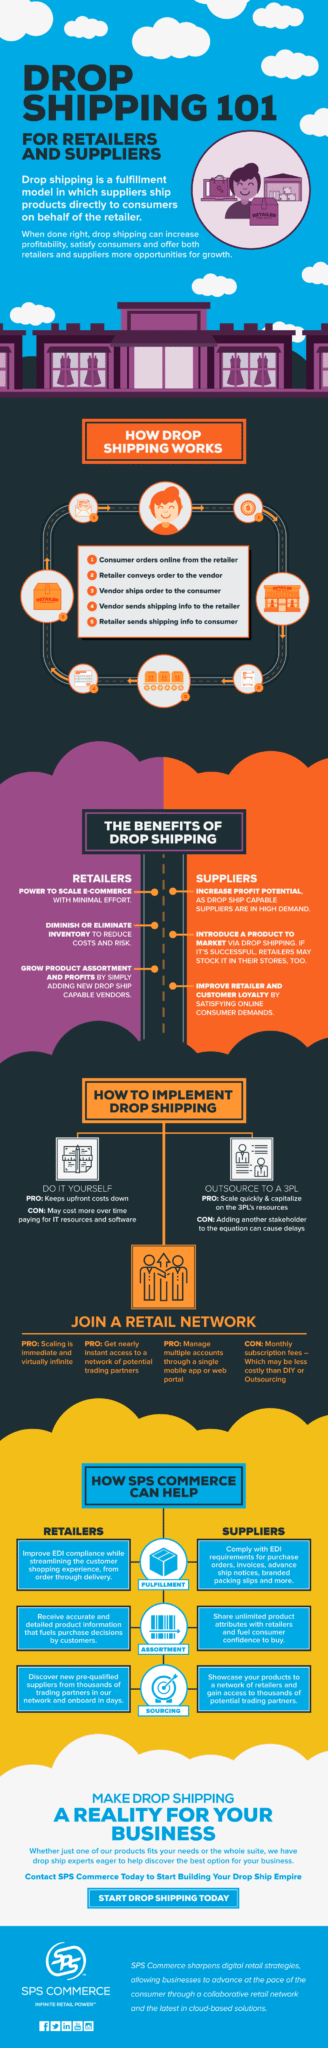 sps-infographic-drop-shipping-101